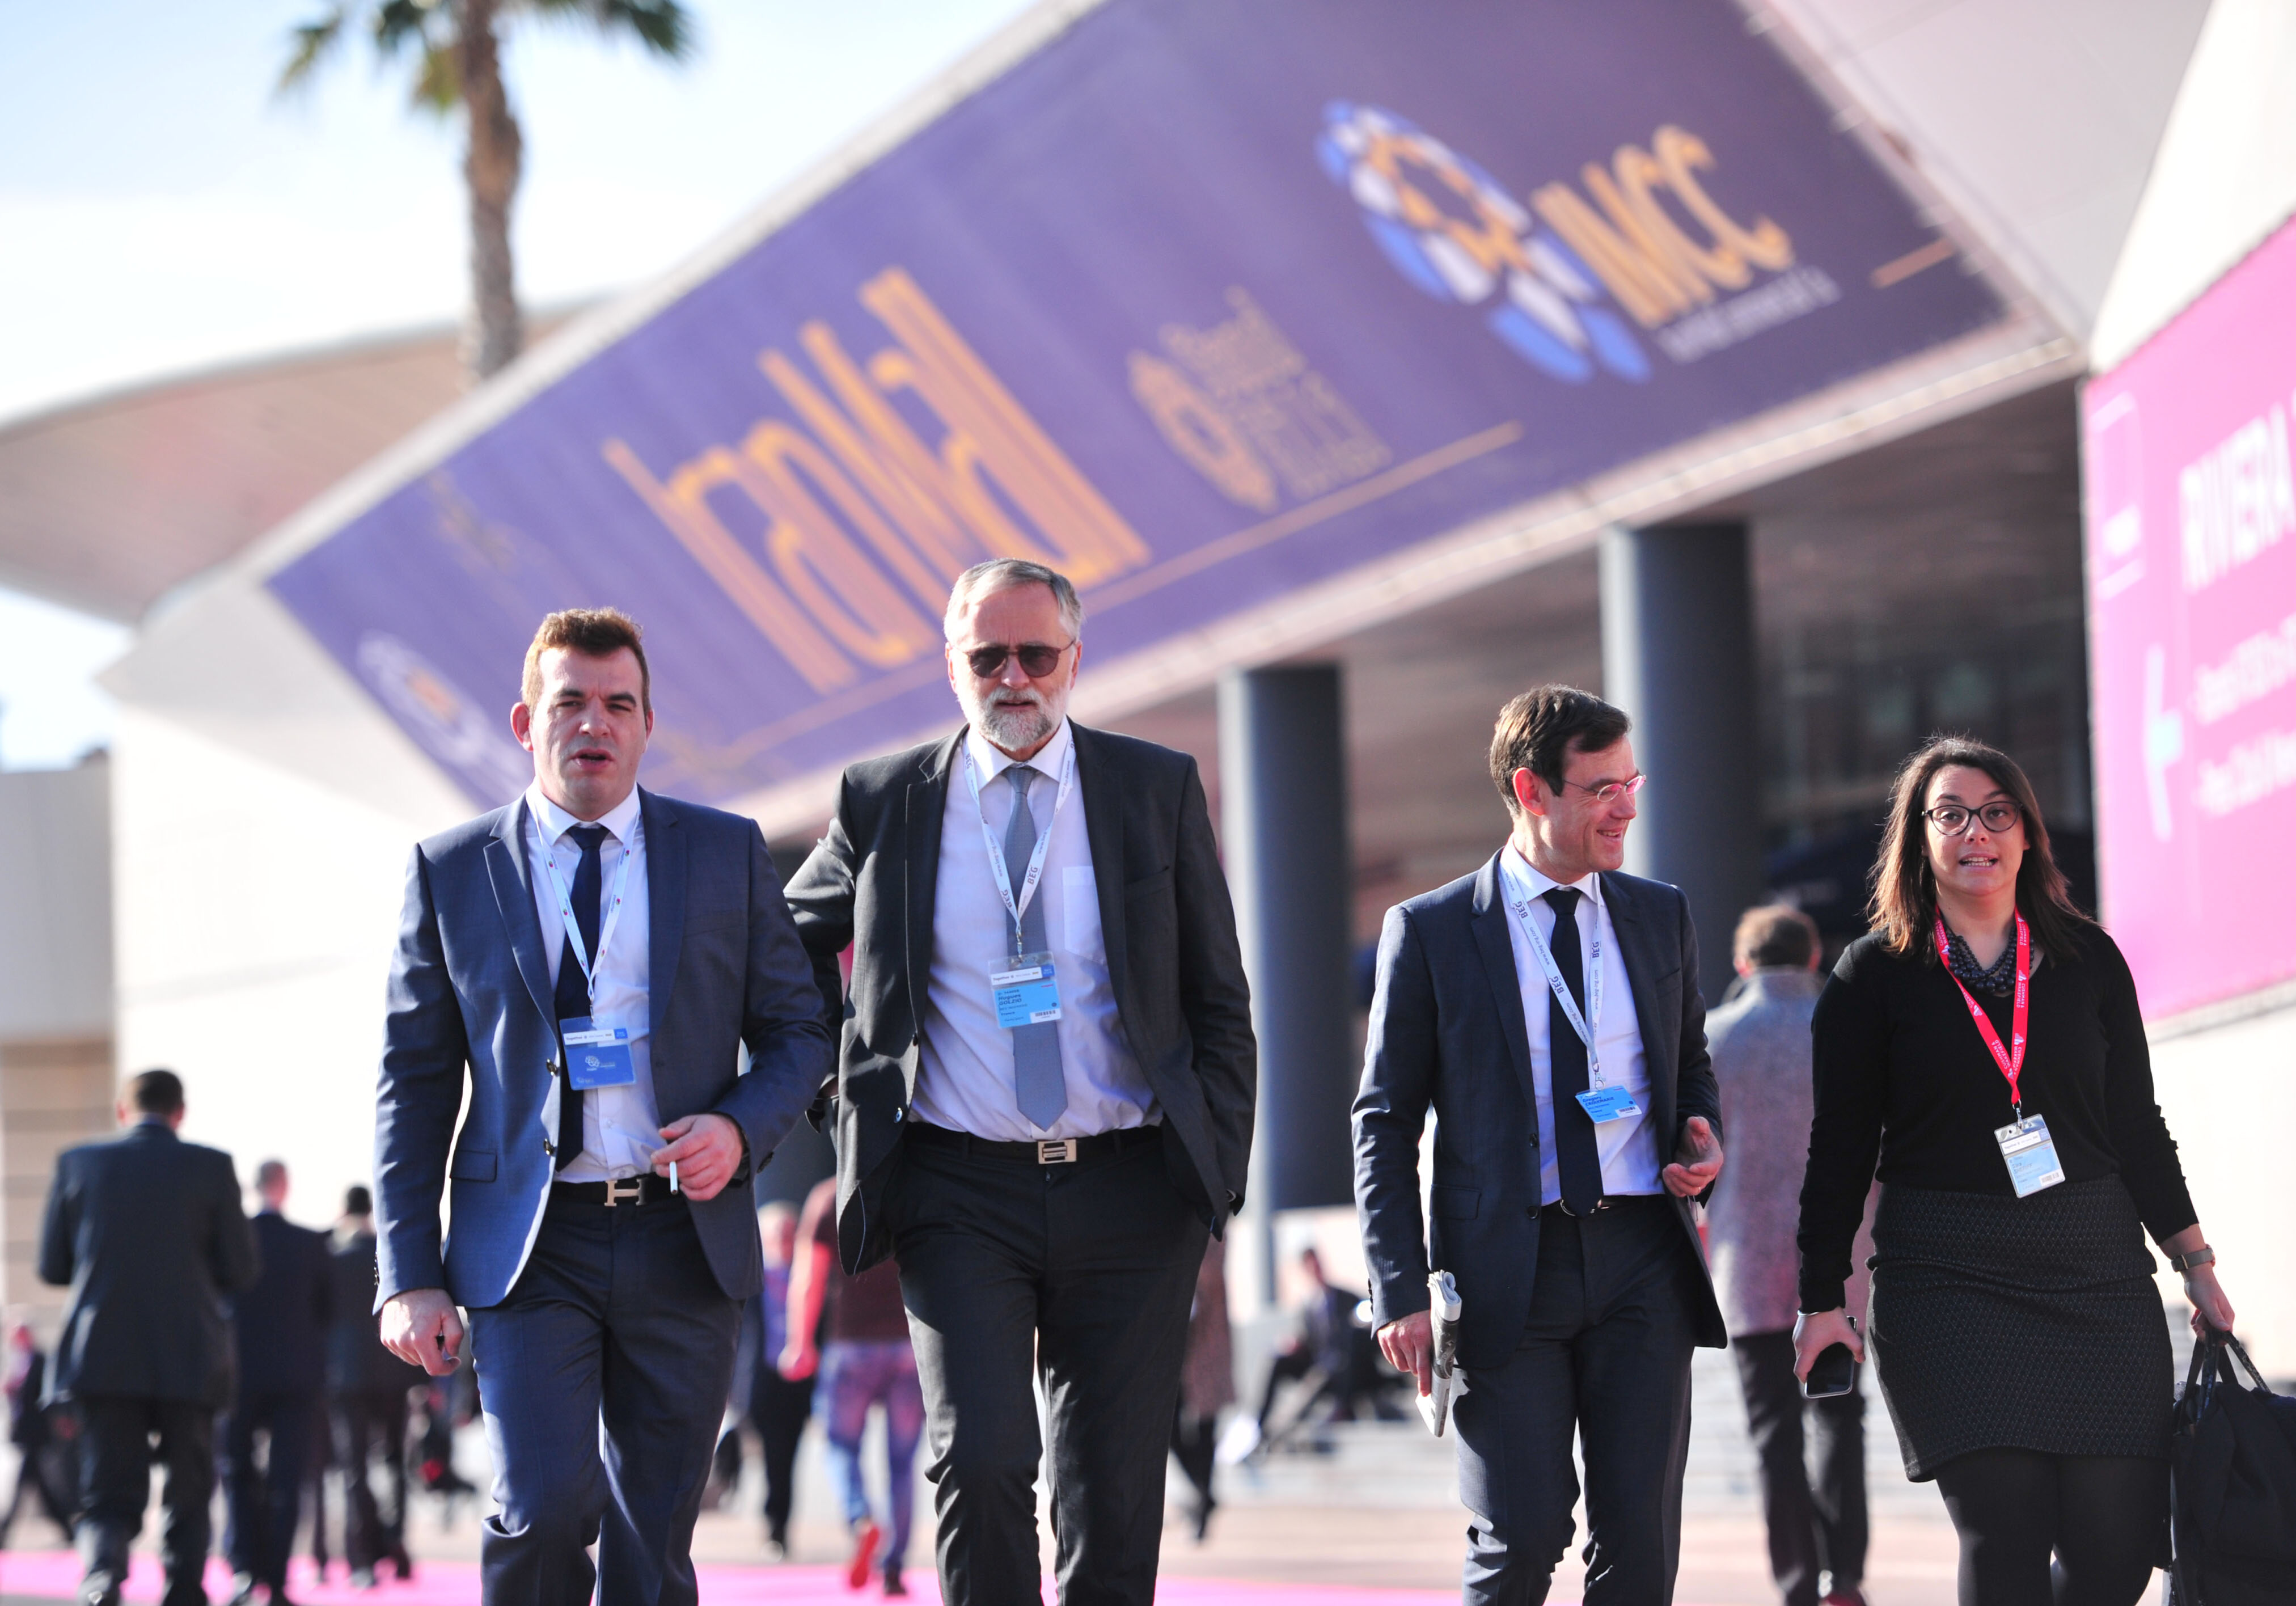 MAPIC 2016 - ATMOSPHERE - OUTSIDE - VISITORS